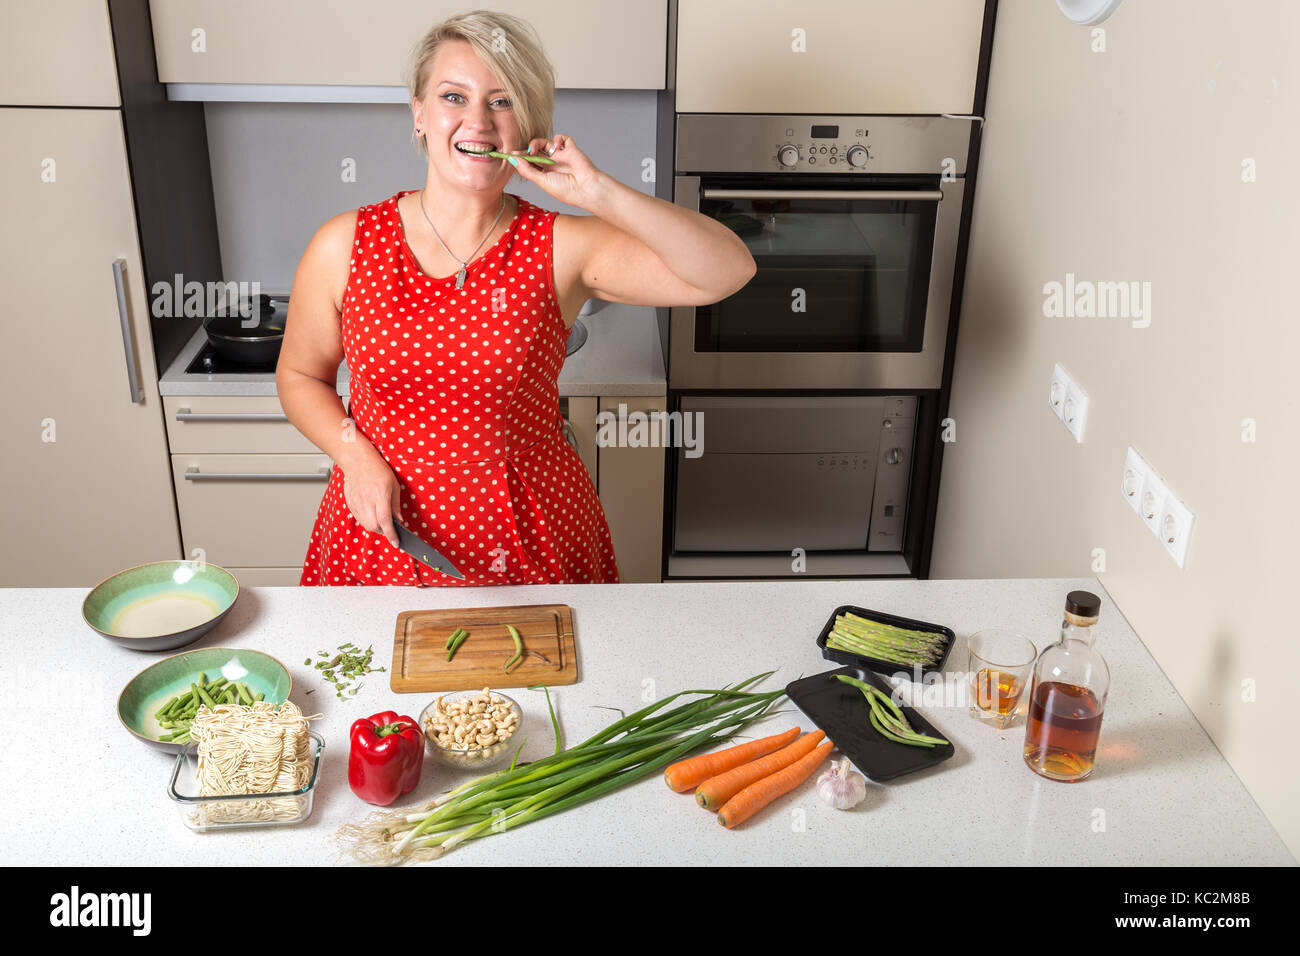 Girl biting asparagus and holding knife in other hand - Stock Image